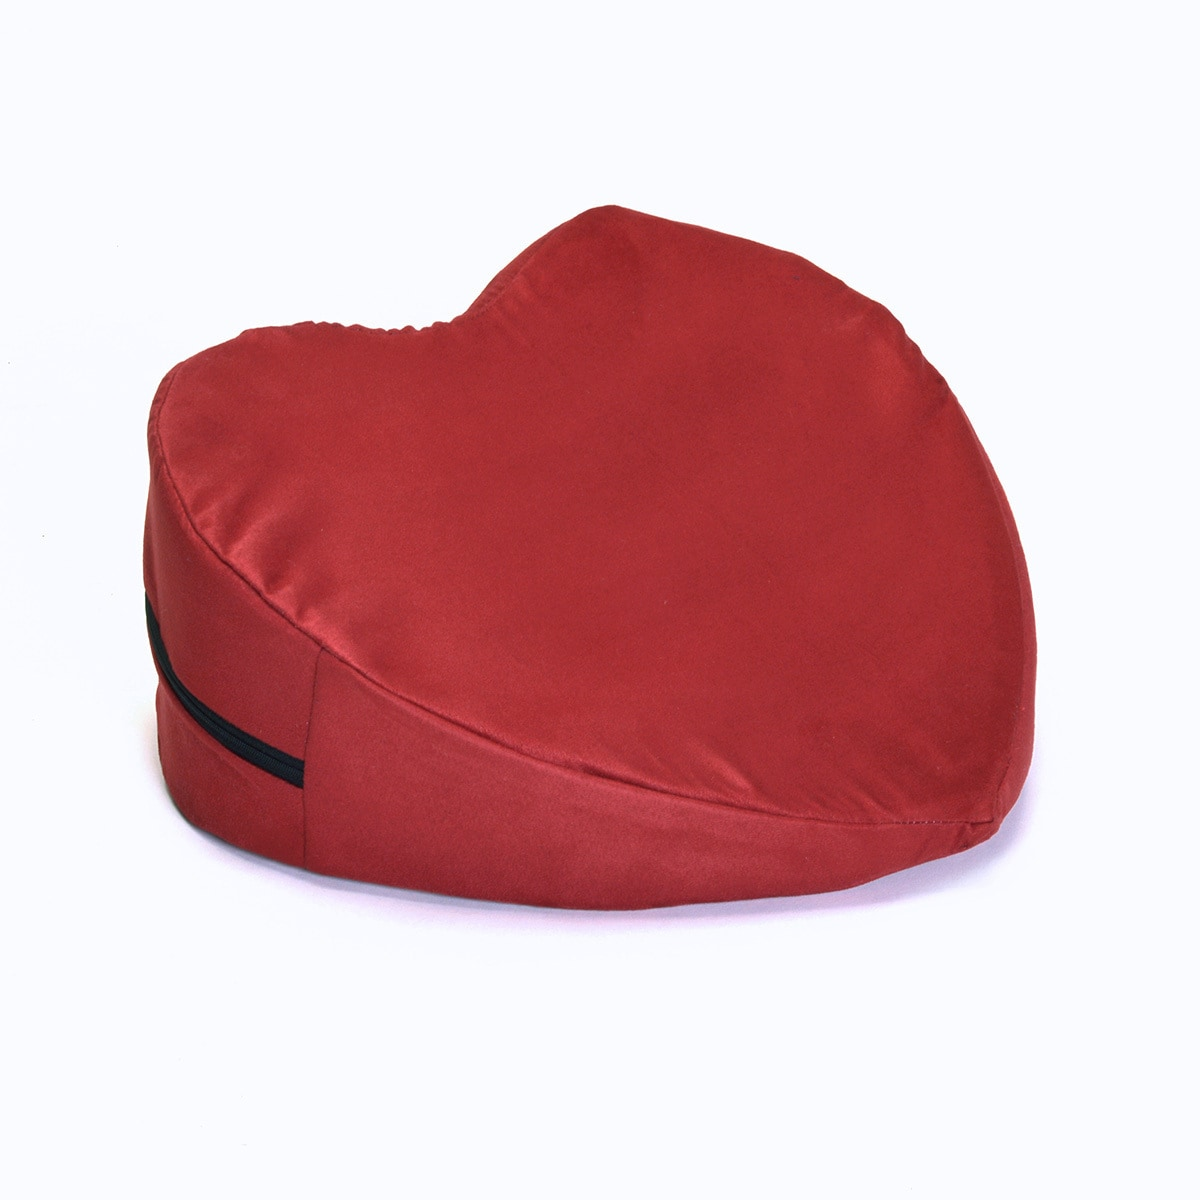 Hermell Heart-shaped Large Pleasure Wedge Pillow, Red wine